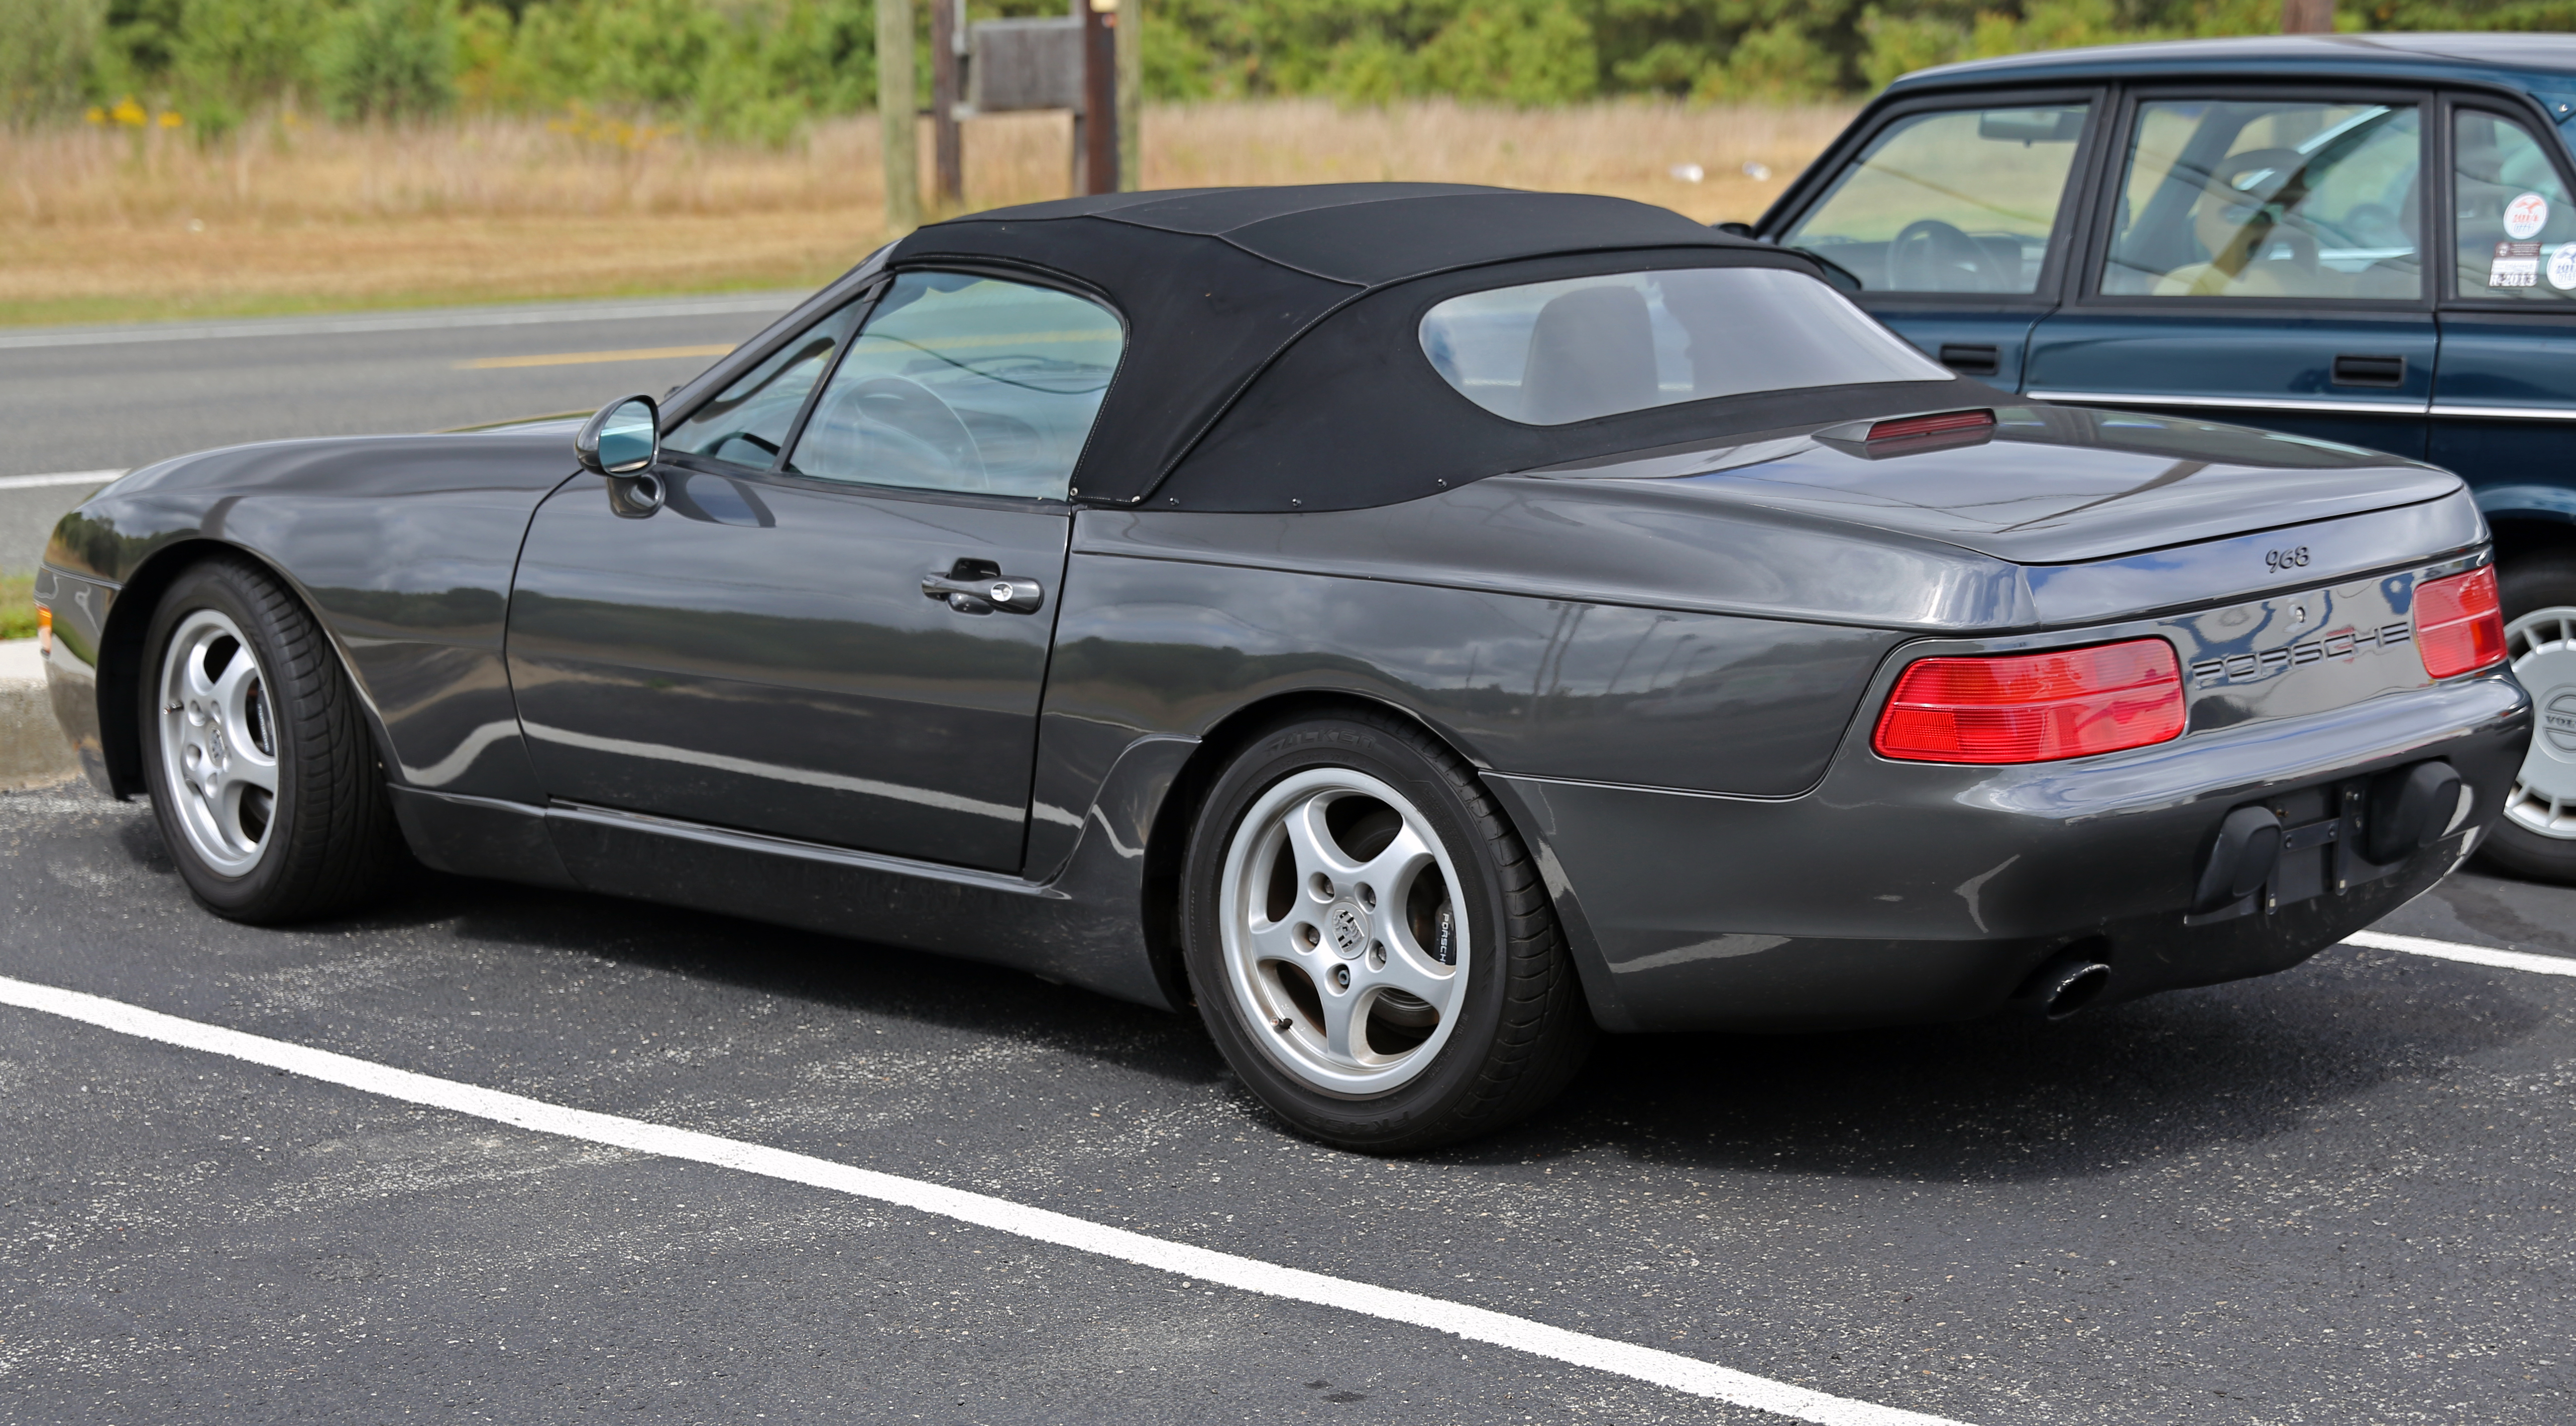 file:1993 porsche 968 cabriolet, rear left - wikimedia commons